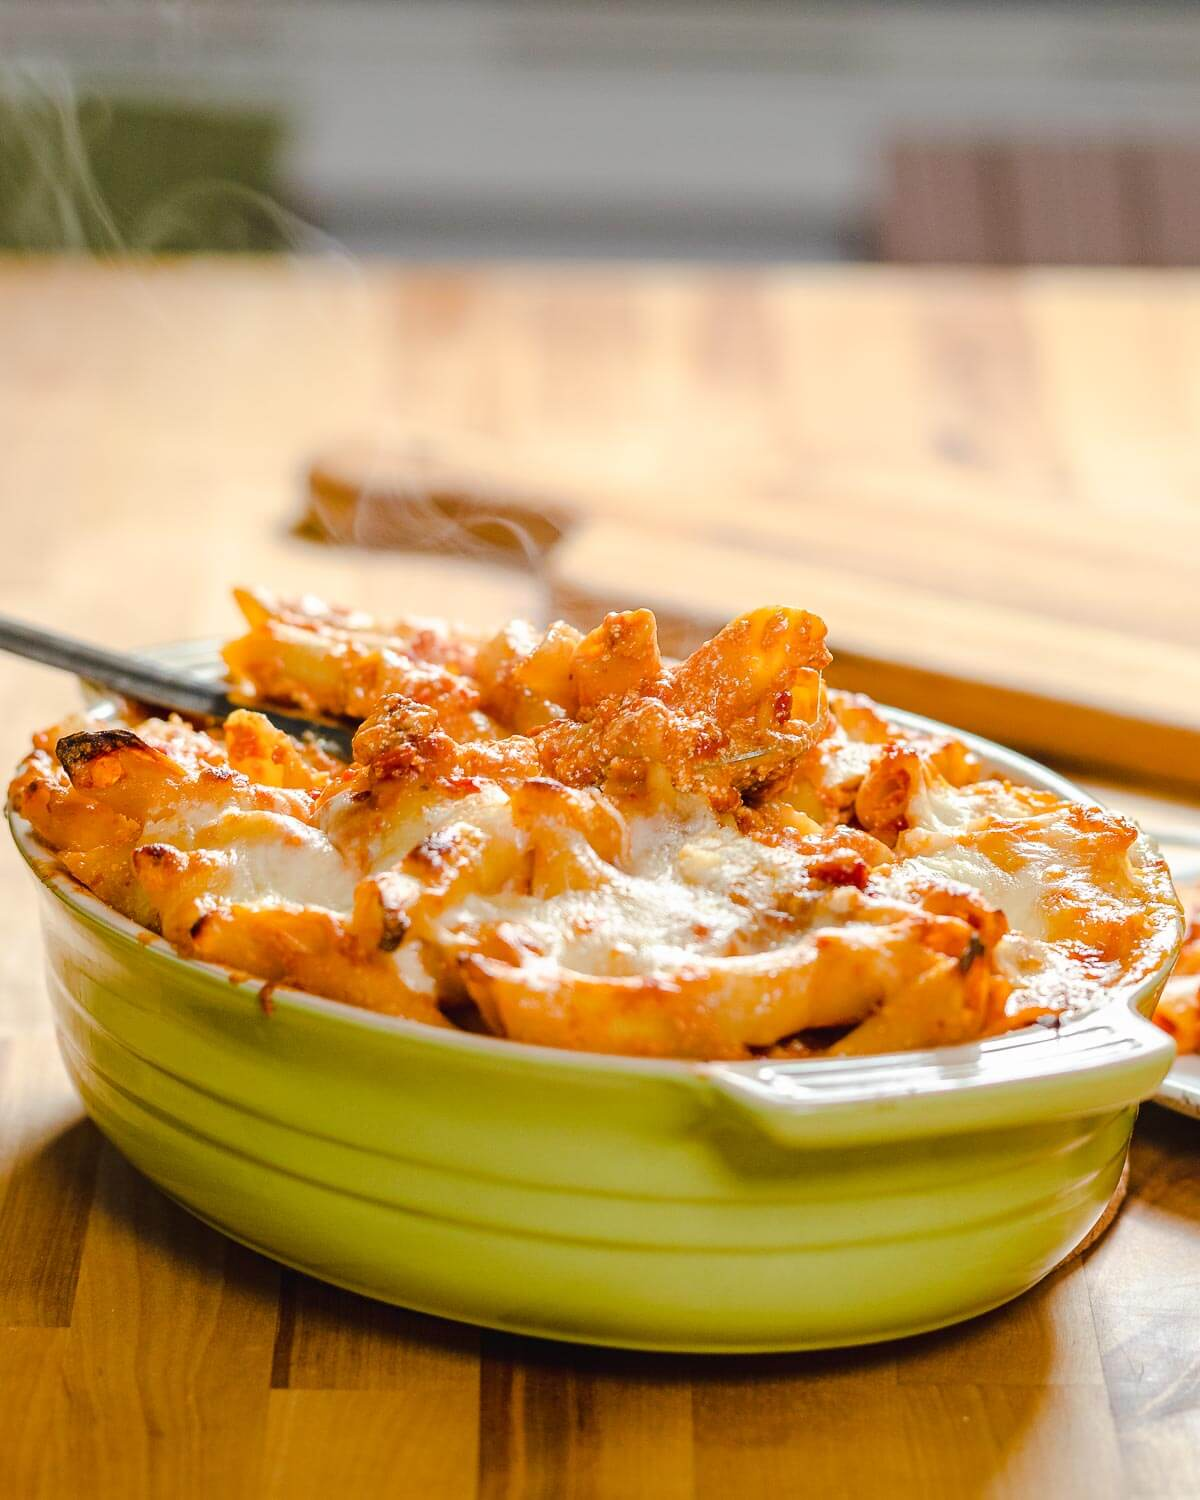 Baked pasta dish on table with steam rising from it.